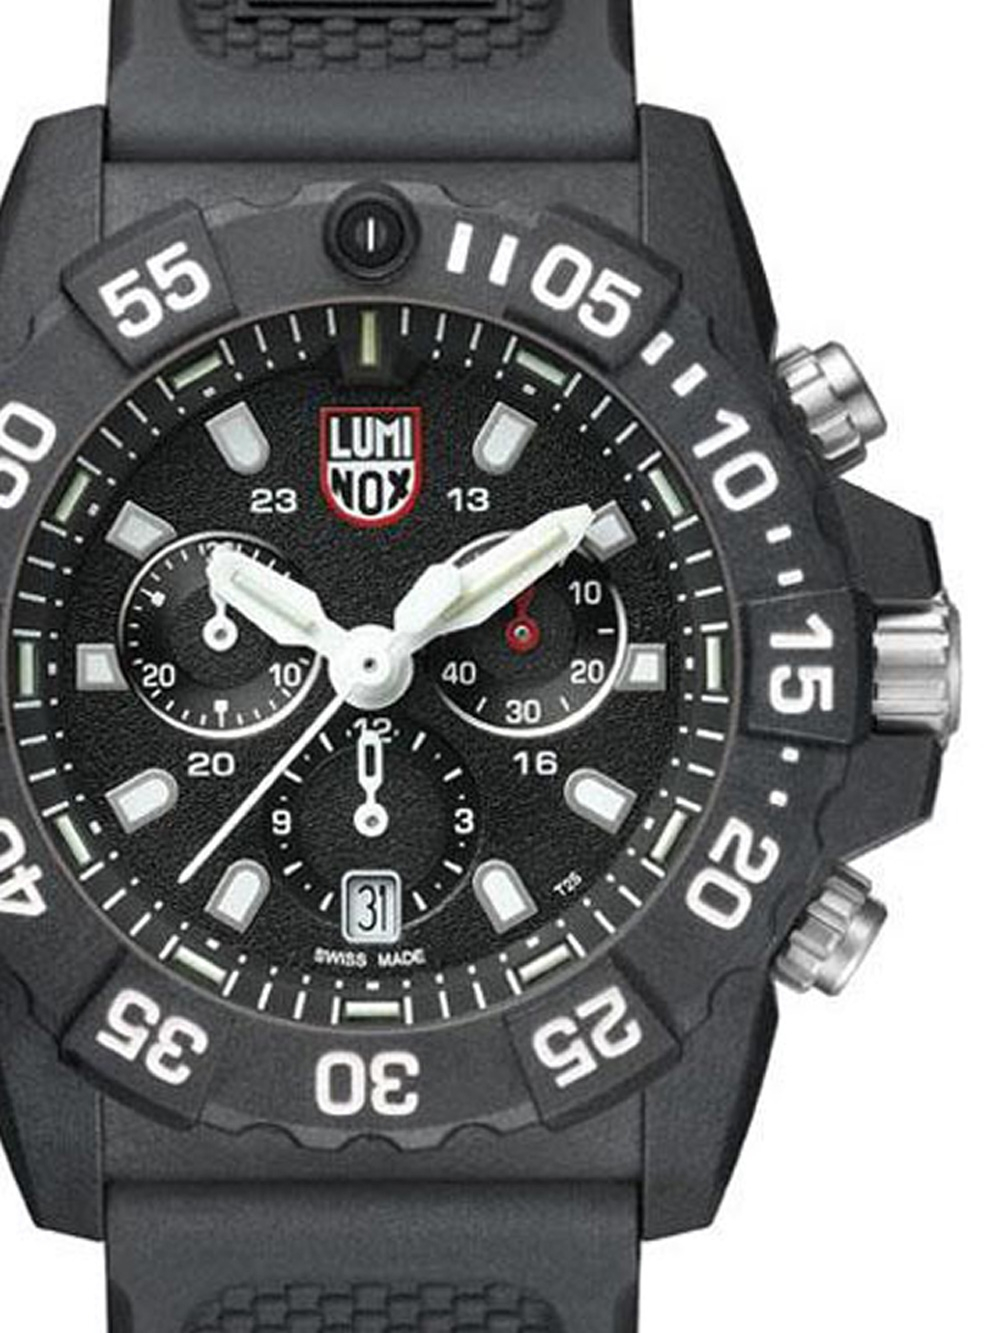 XS.3581 Navy Seal Chronograph 45mm 20ATM